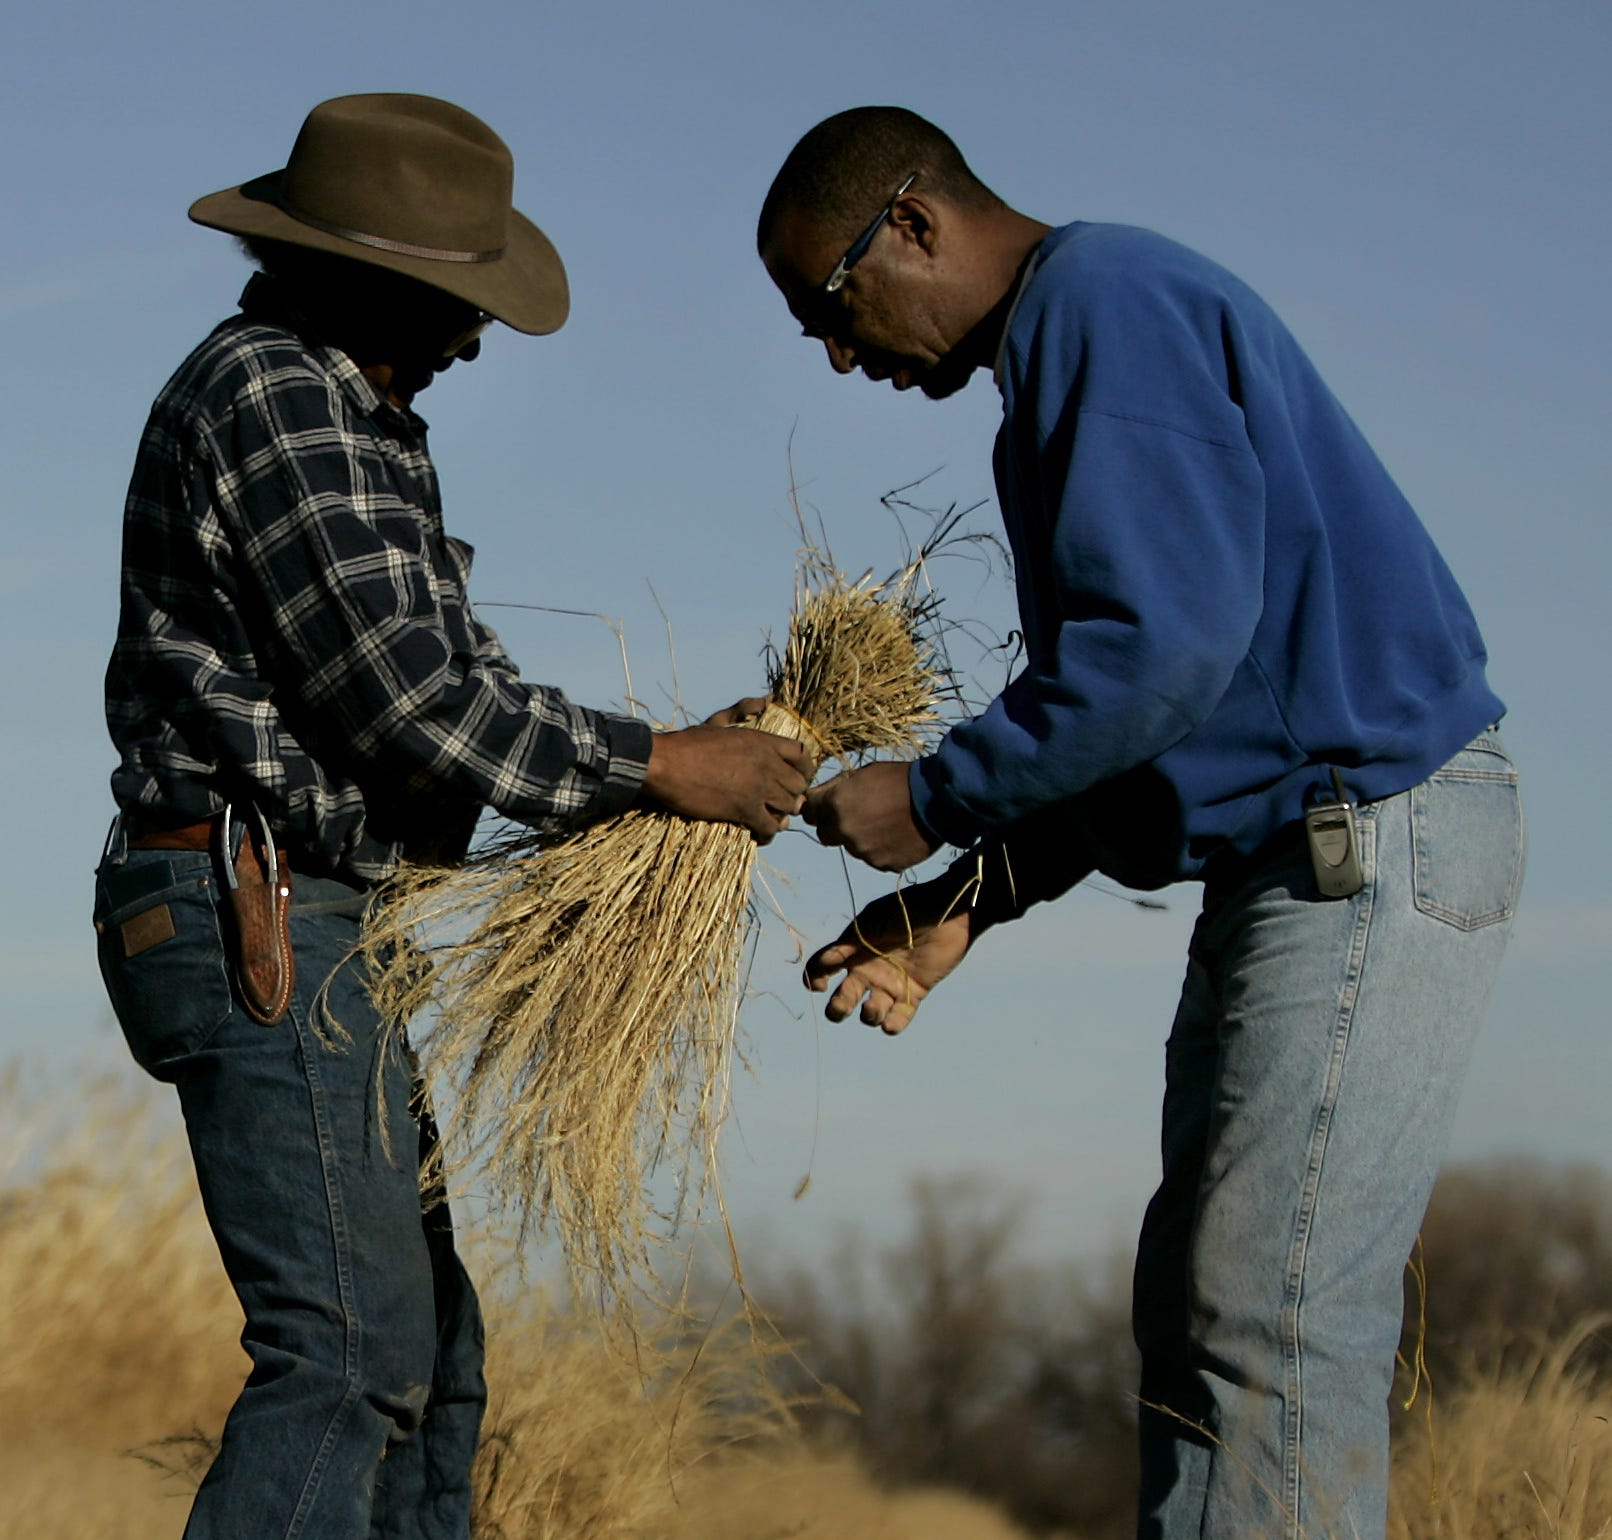 Tom Vilsack on Why Debt Relief for Black and Minority Farmers is a Major Civil Rights Victory